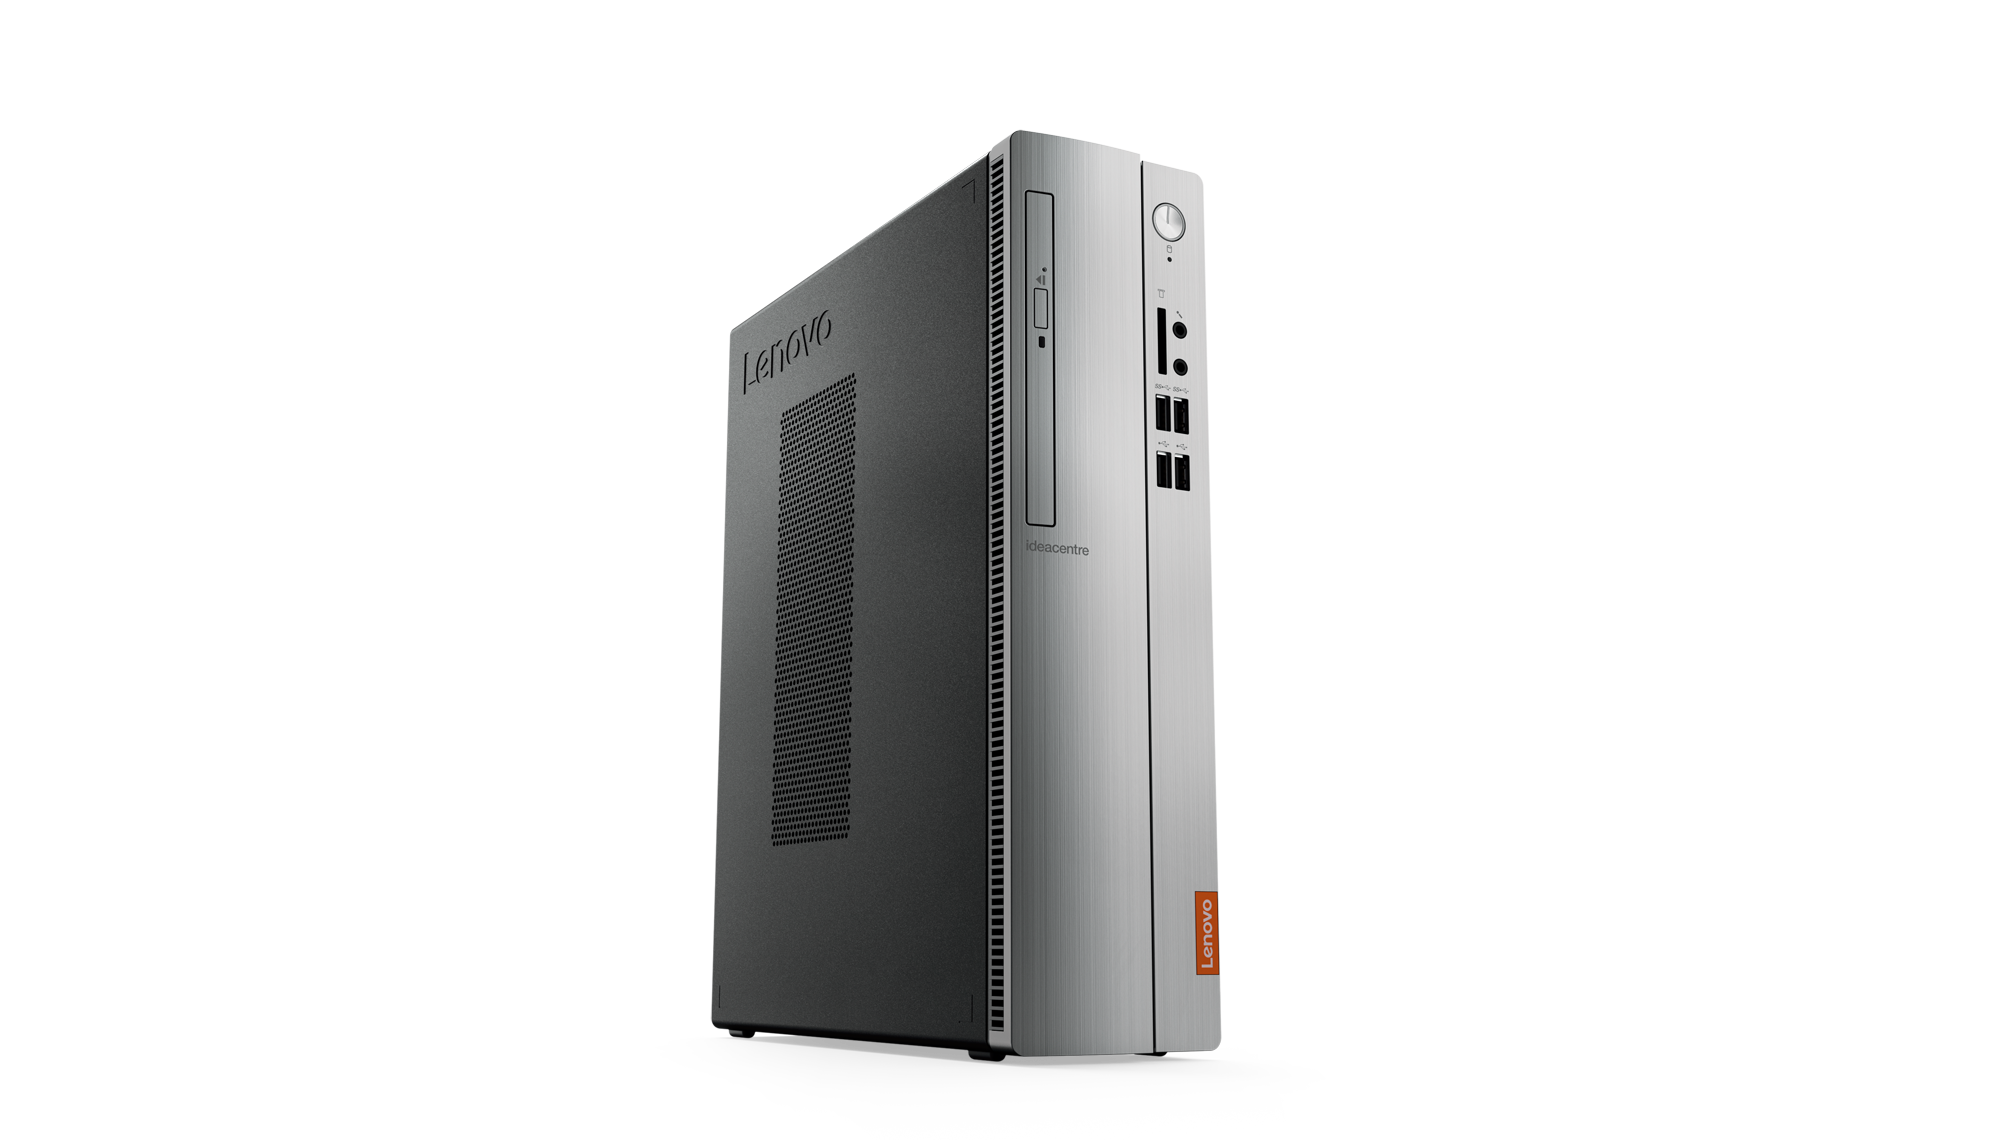 Lenovo IdeaCentre 510S-08IKL i5-7400 3,50GHz/8GB/1TB/GeForce 2GB/DVD-RW/SFF/WIN10 90GB00B8CK